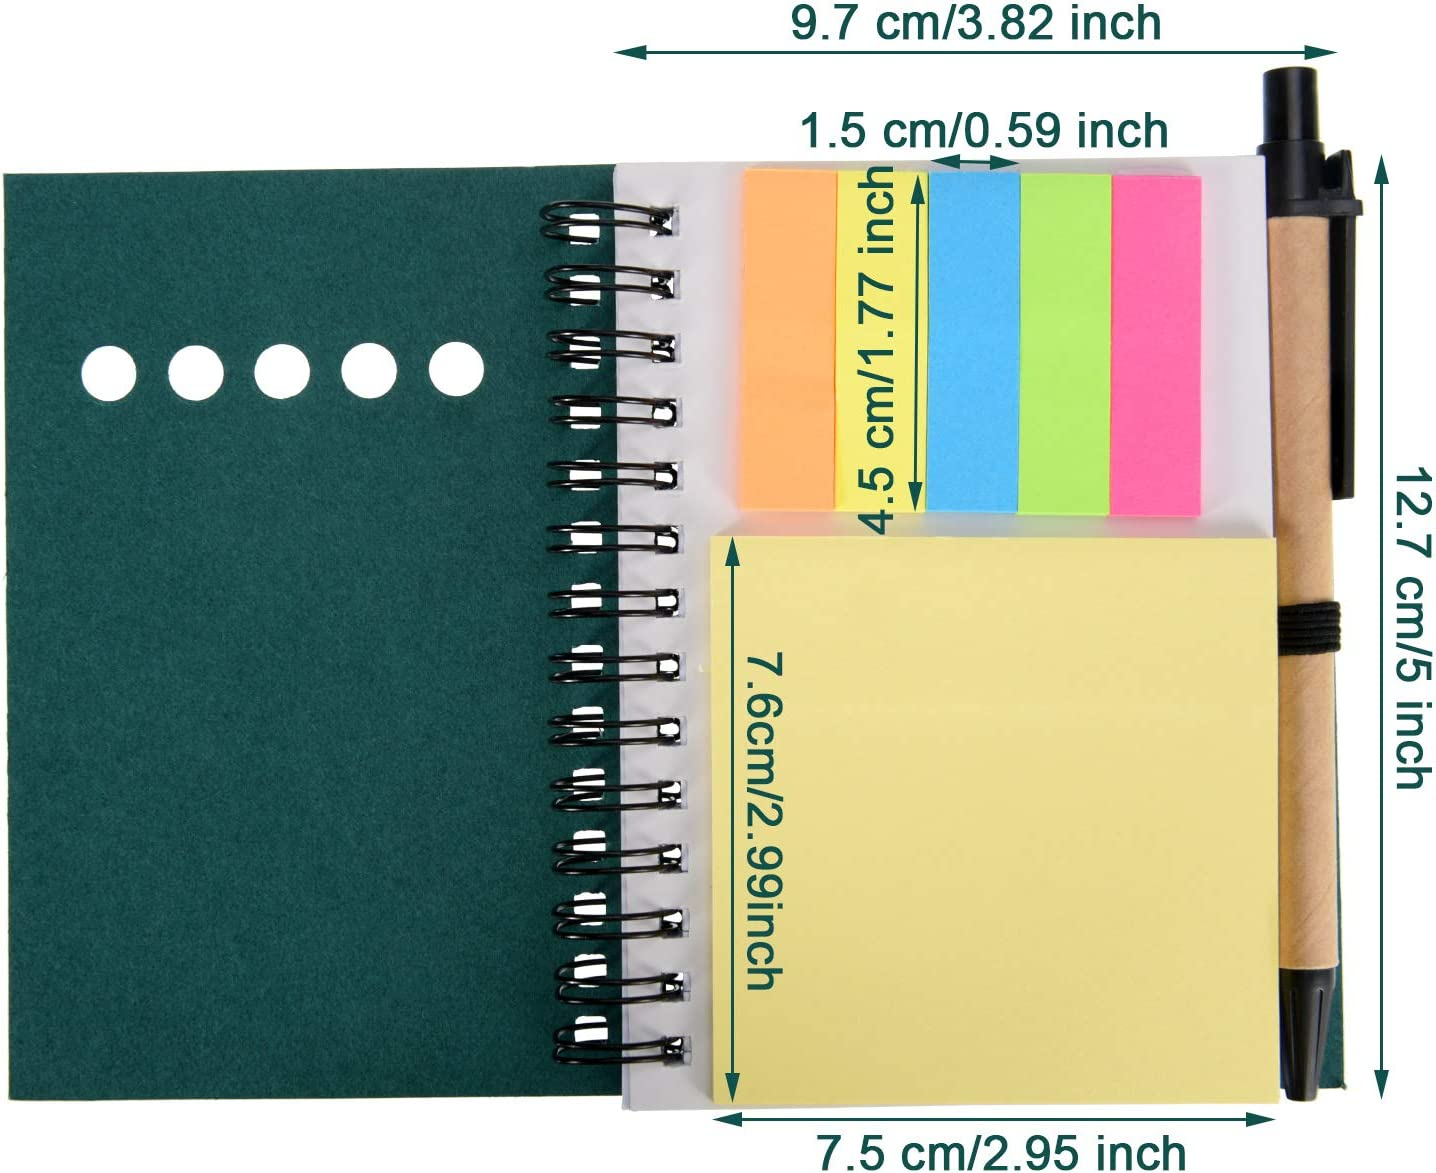 Sticky Colored Notes Page Marker Tabs Maxdot 4 Pieces Kraft Paper Steno Pocket Business Notebook Spiral Lined Notepad Set with Pen in Holder Green Cover